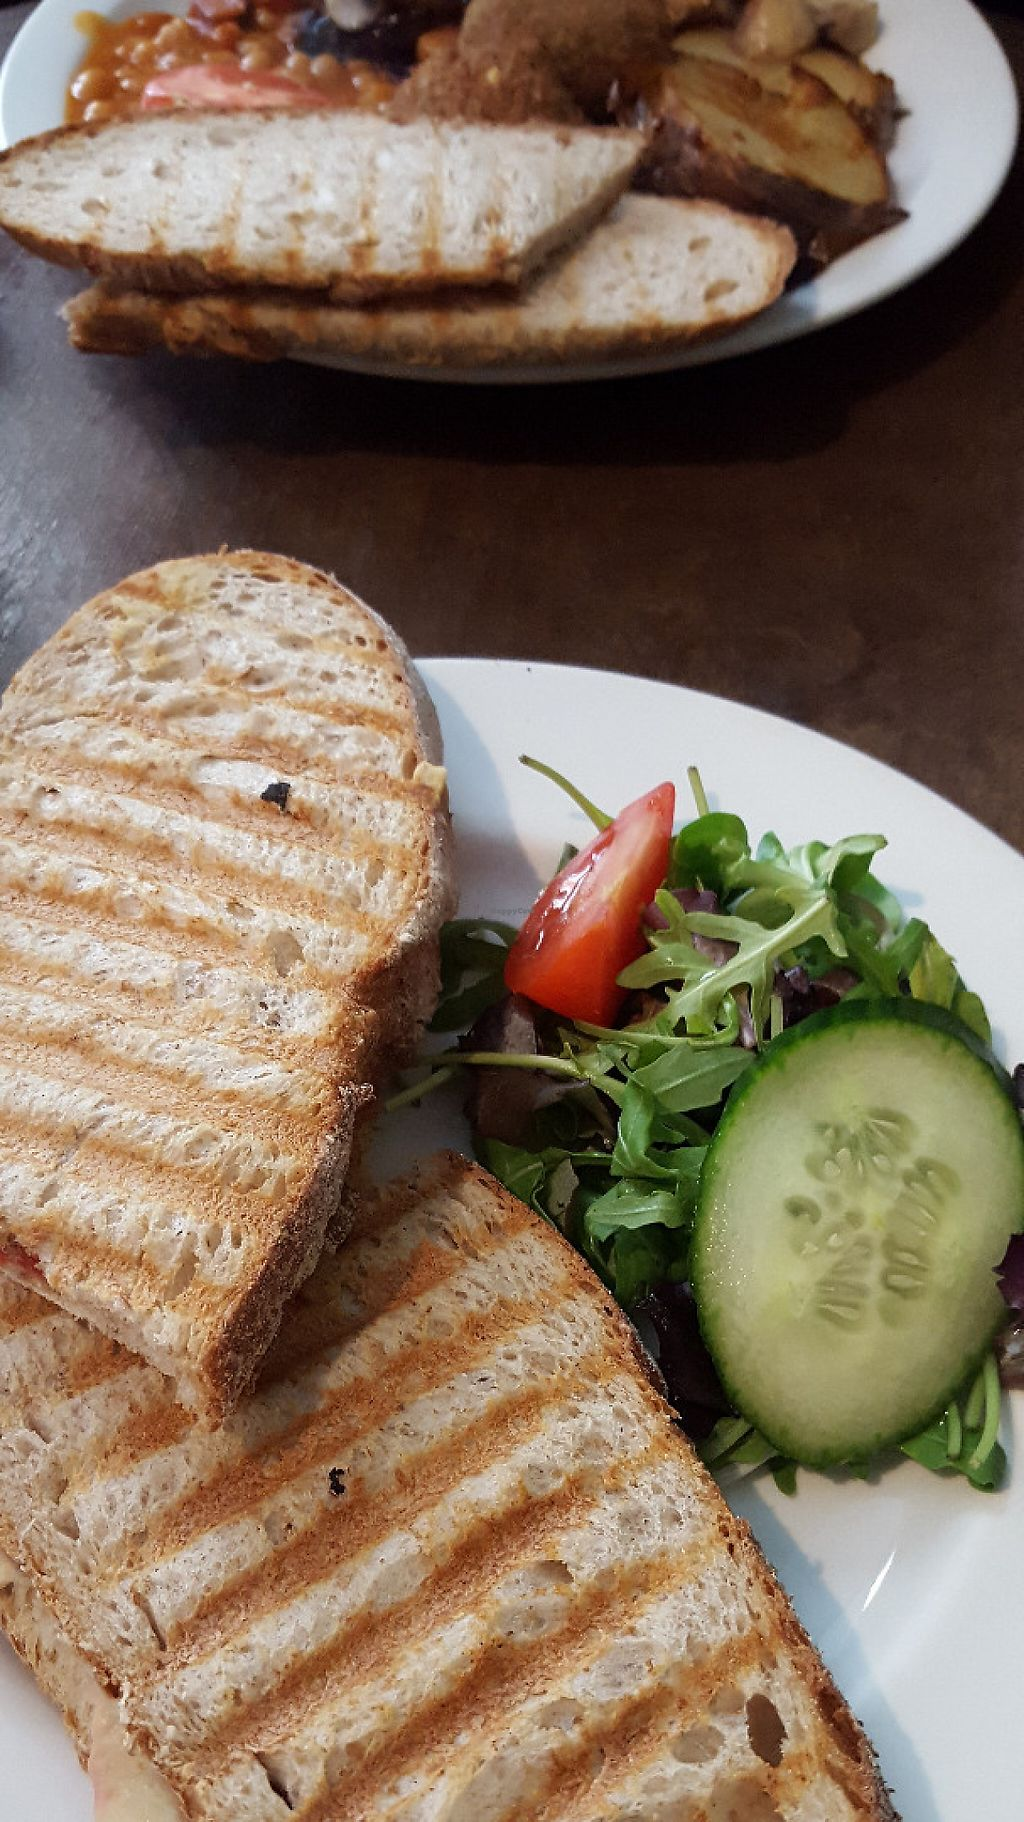 "Photo of Organic Deli Cafe  by <a href=""/members/profile/VeganAnnaS"">VeganAnnaS</a> <br/>Toasted sandwich (falafel and hummus) <br/> May 21, 2017  - <a href='/contact/abuse/image/34102/261107'>Report</a>"